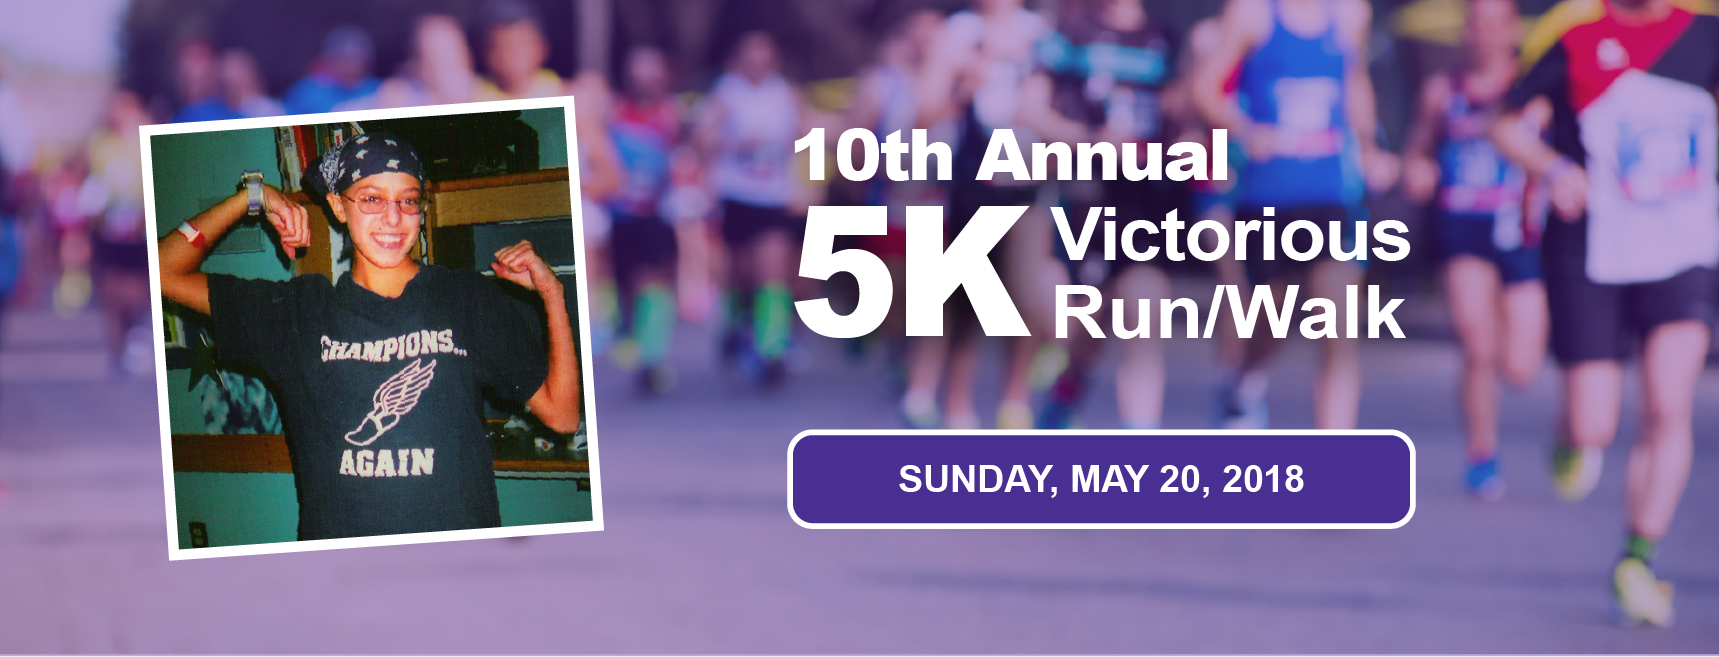 10th_Annual_5K_Banner-01.png